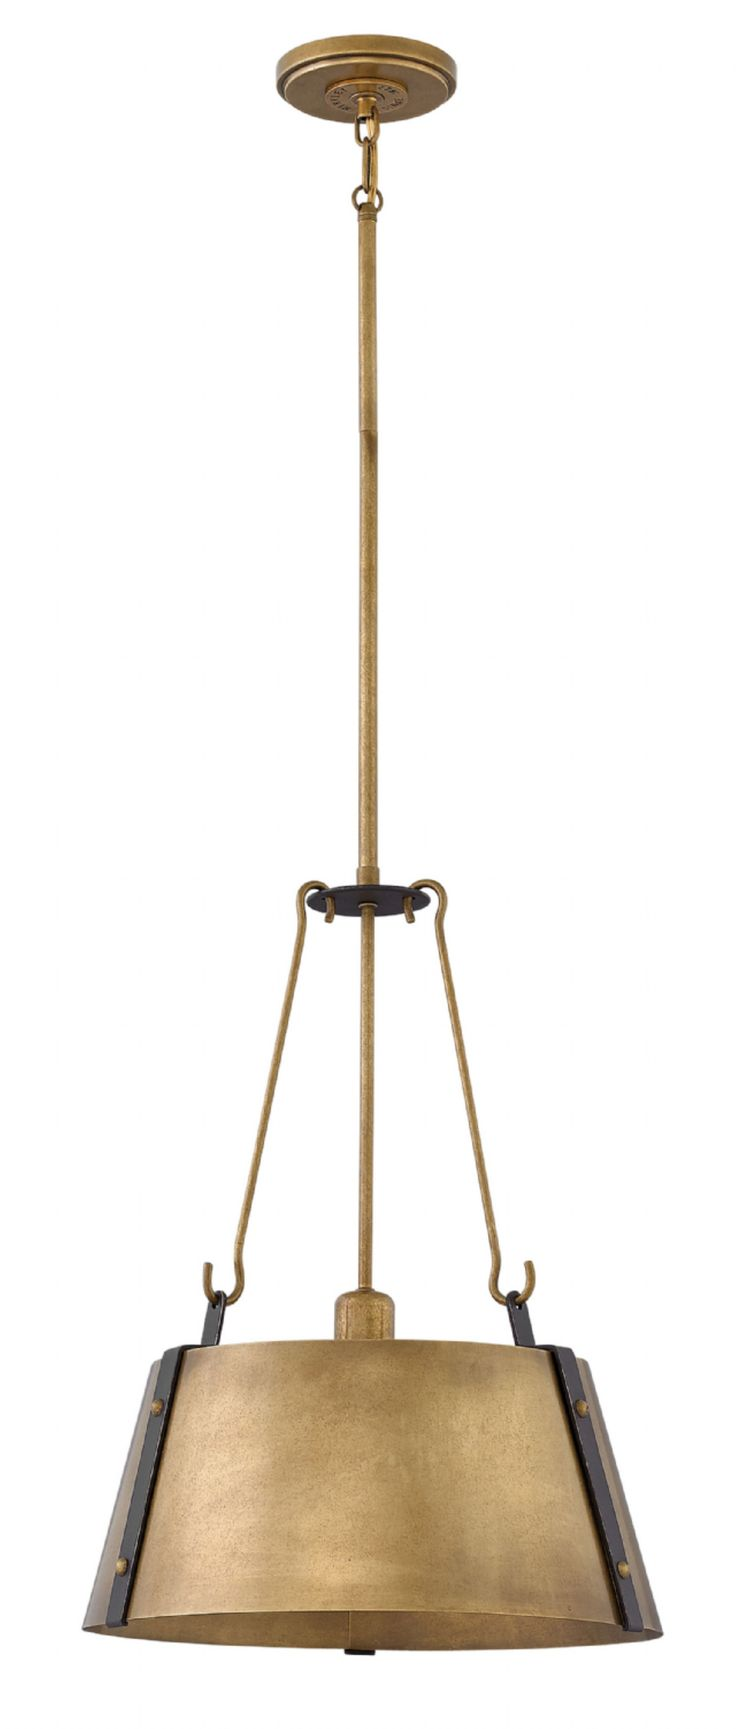 hinkley lighting carries many rustic brass cartwright interior hanging light fixtures that can be used to enhance the appearance and lighting of any home